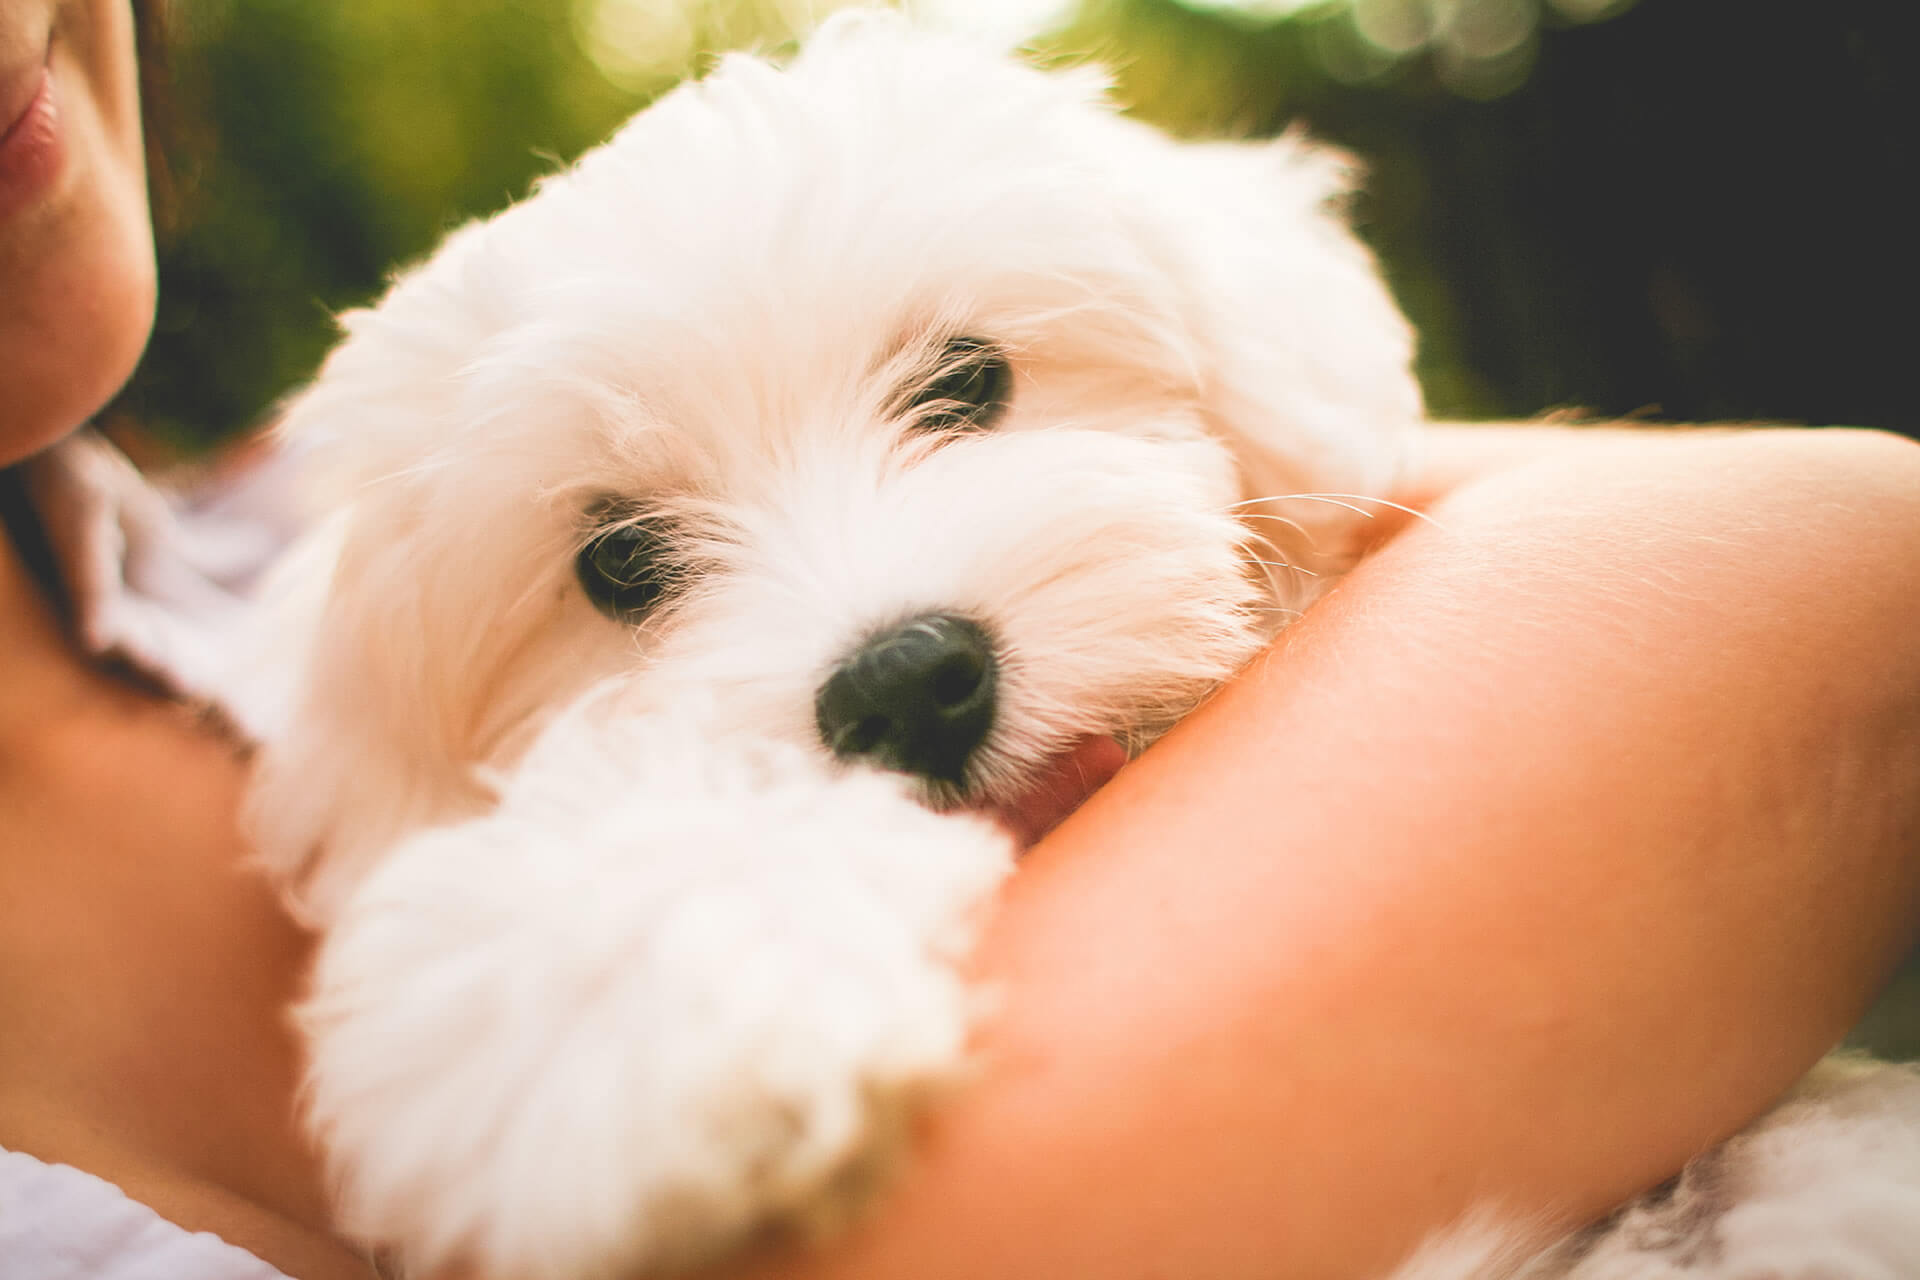 Flower essences for clingy over-attachment, separation anxiety in dogs